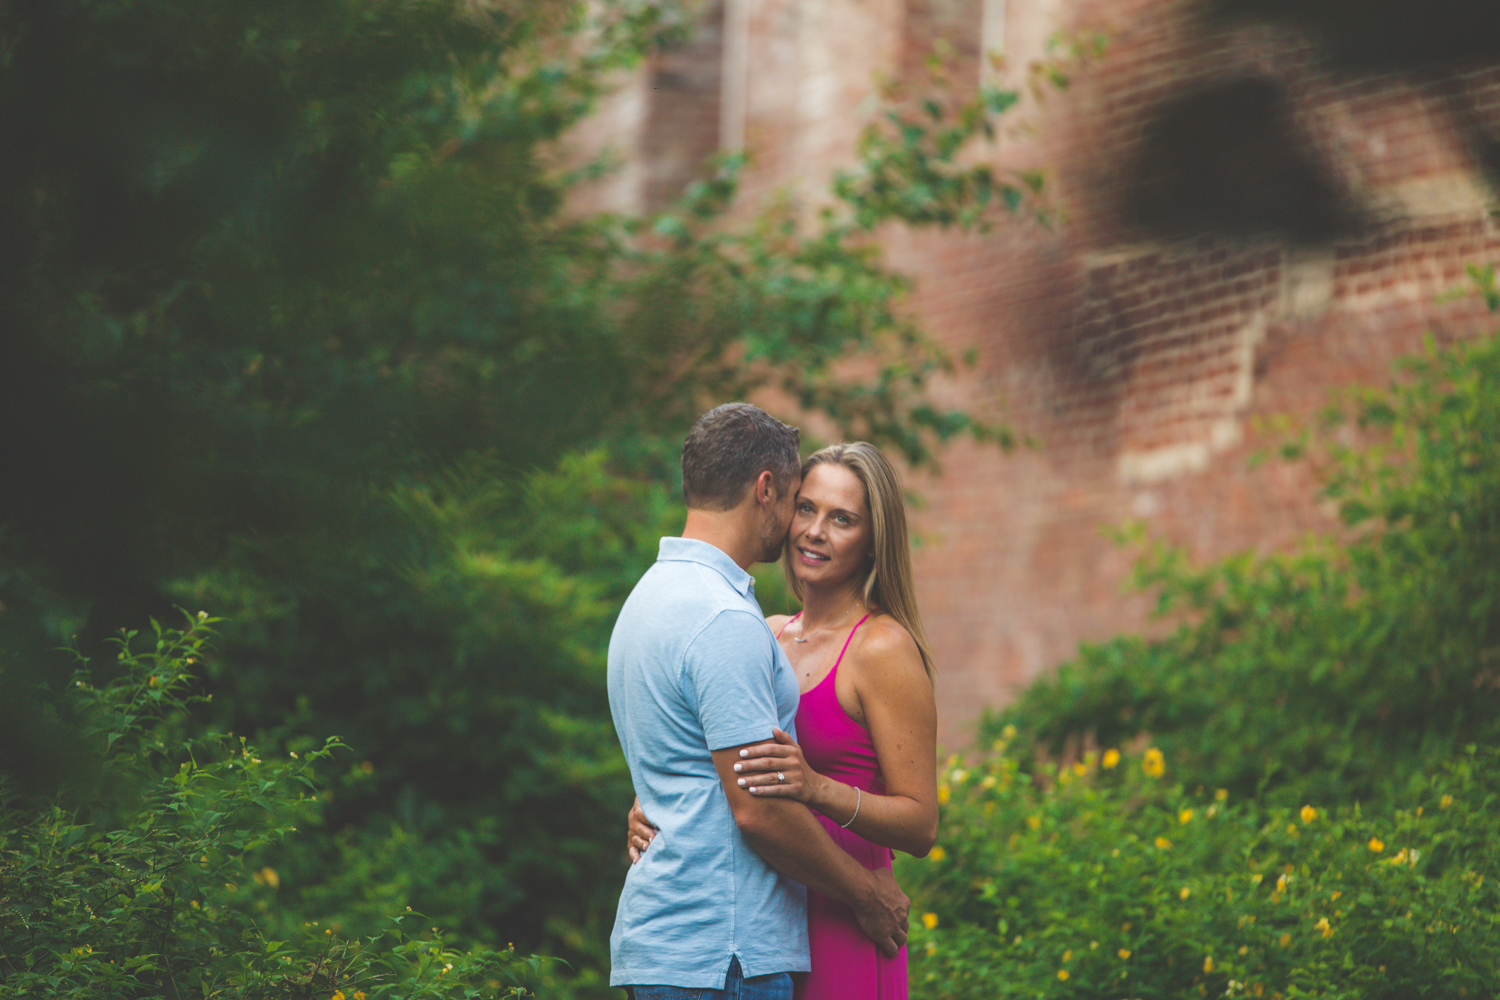 amazing-sunrise-engagement-photography-brooklyn-bridge-dumbo-20.jpg